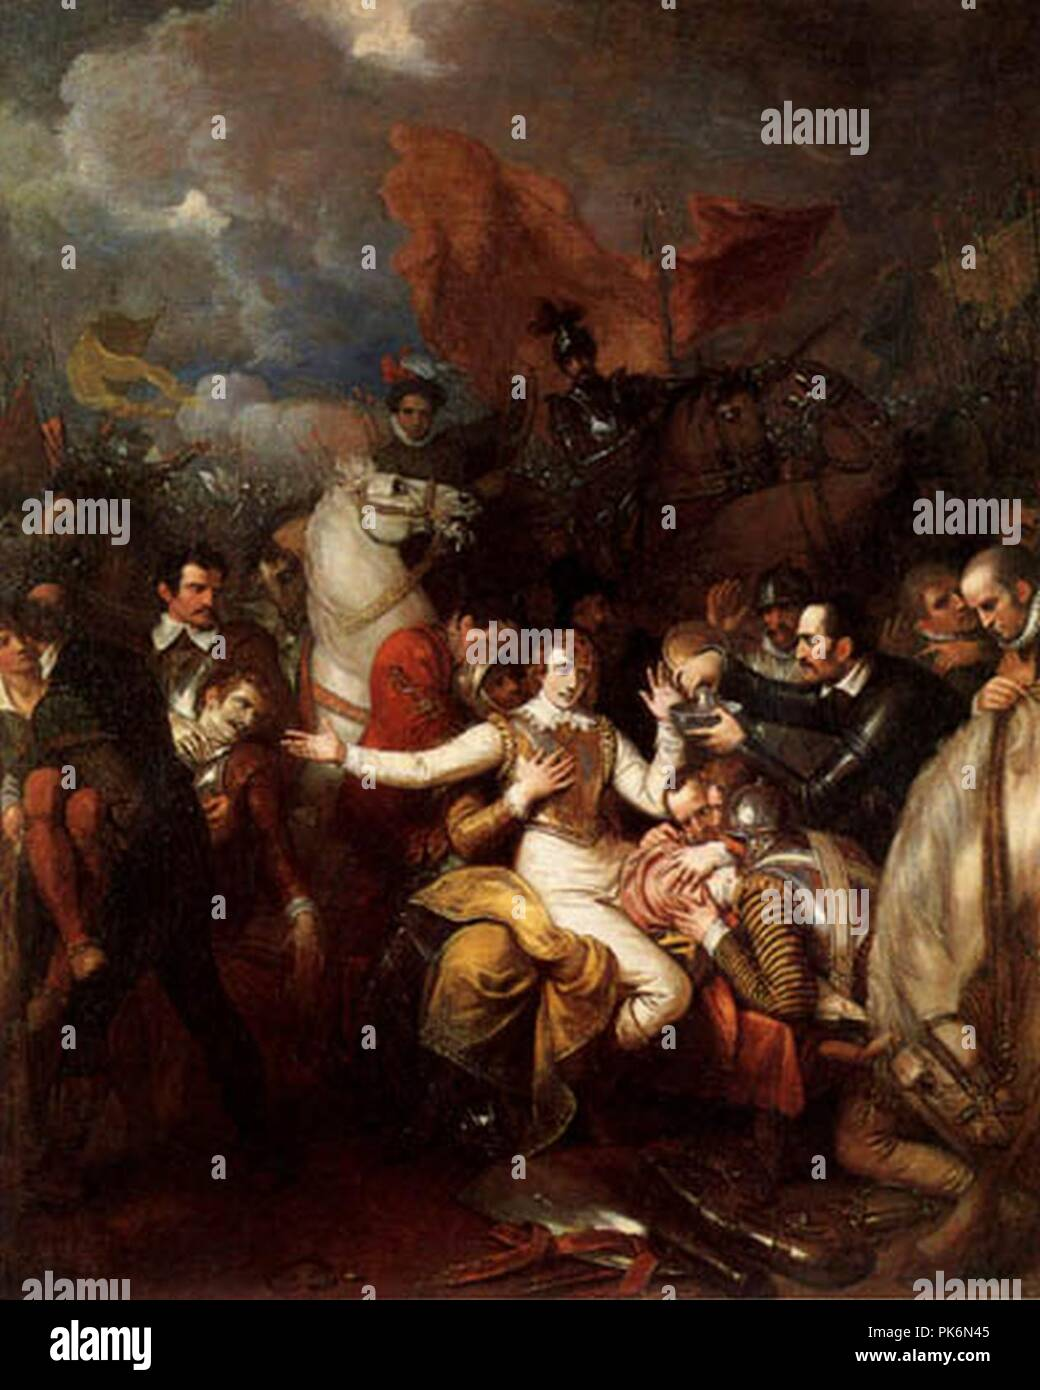 Benjamin West - The Fatal Wounding of Sir Philip Sidney. - Stock Image